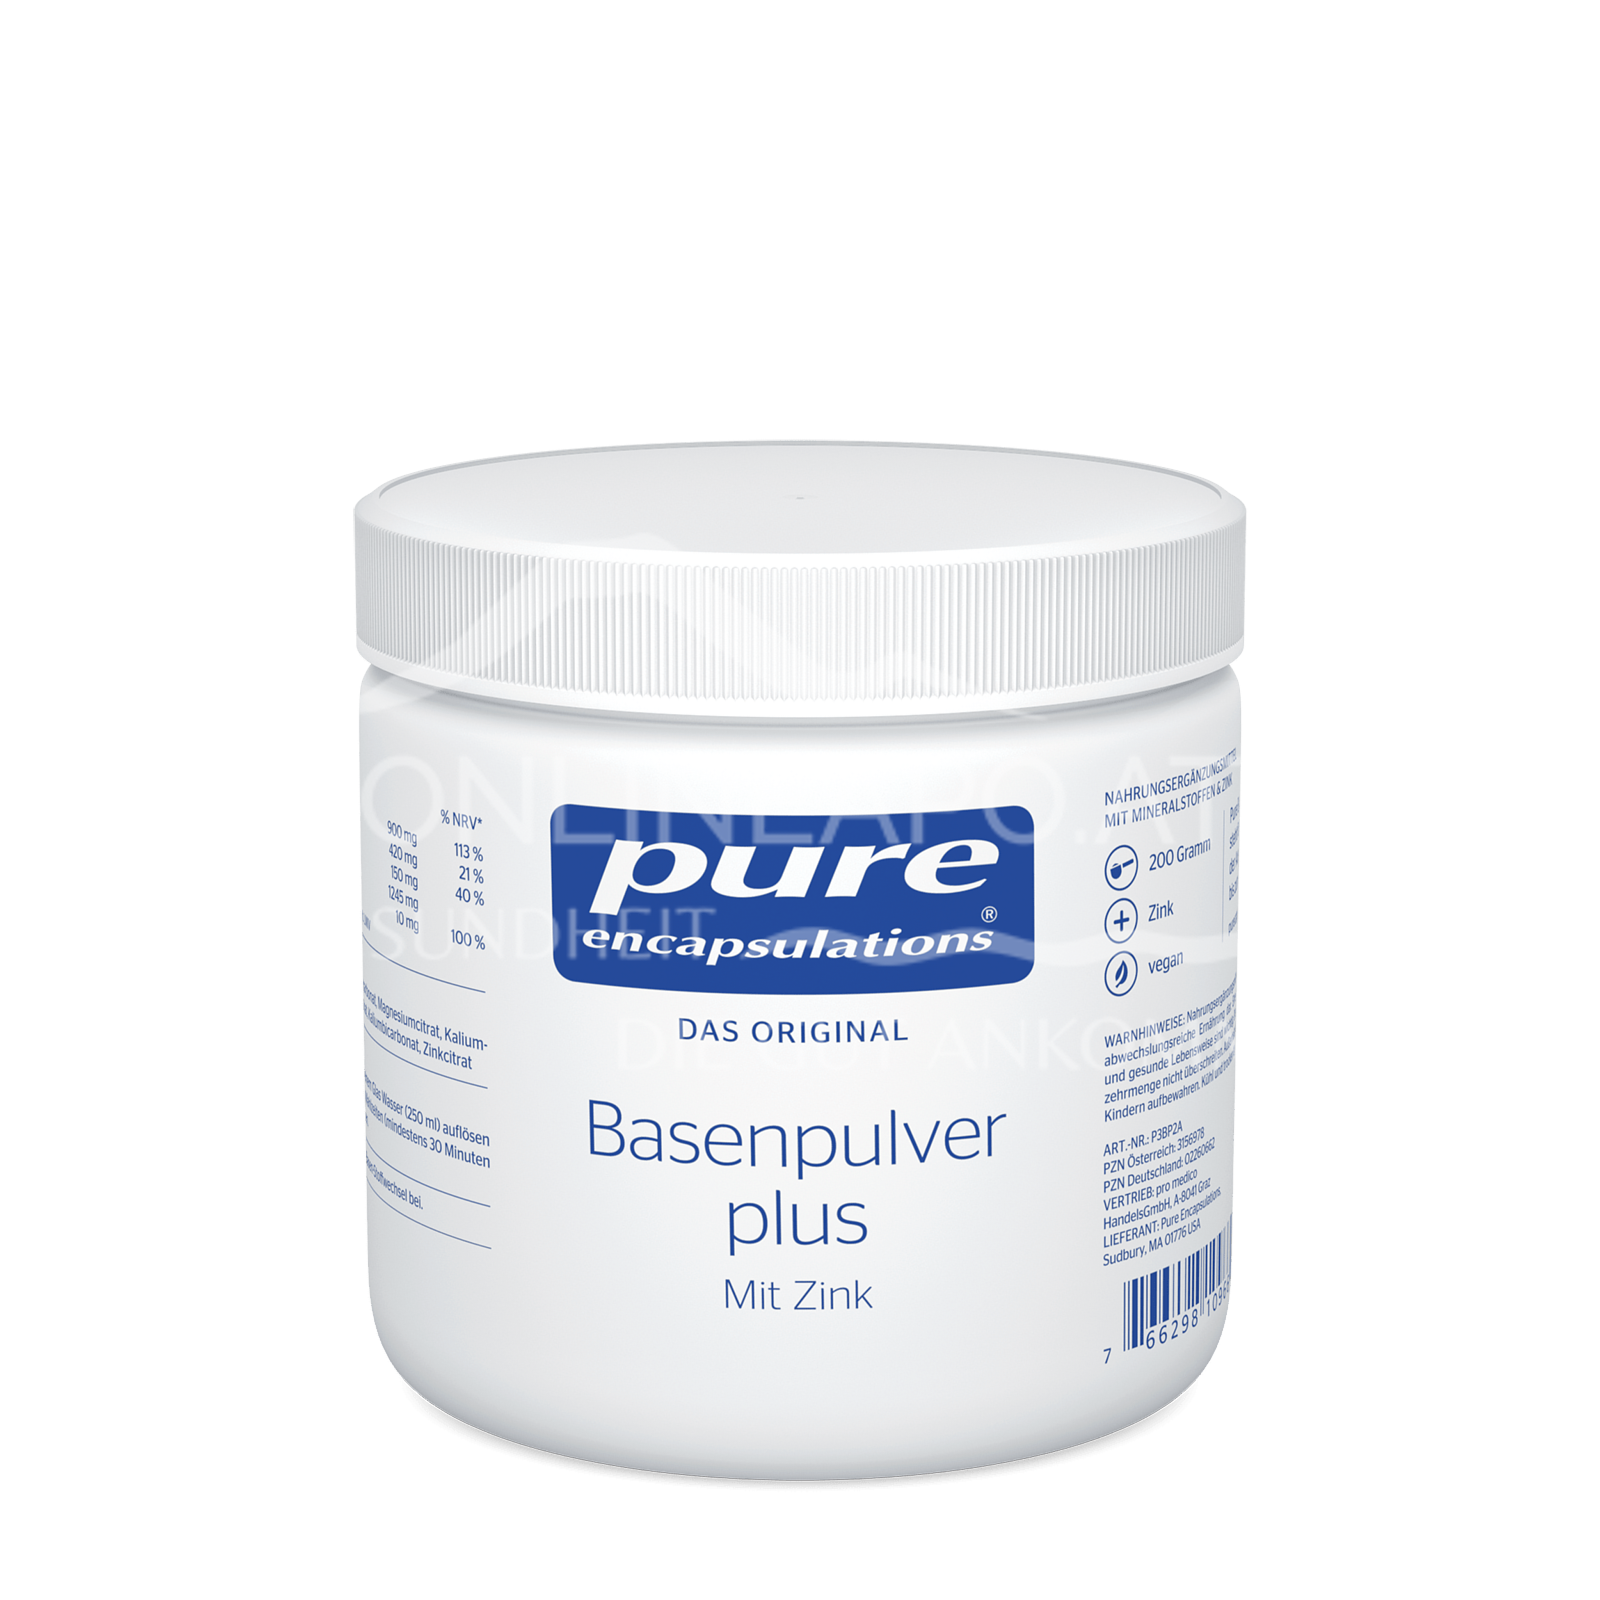 pure encapsulations® Basenpulver plus mit Zink